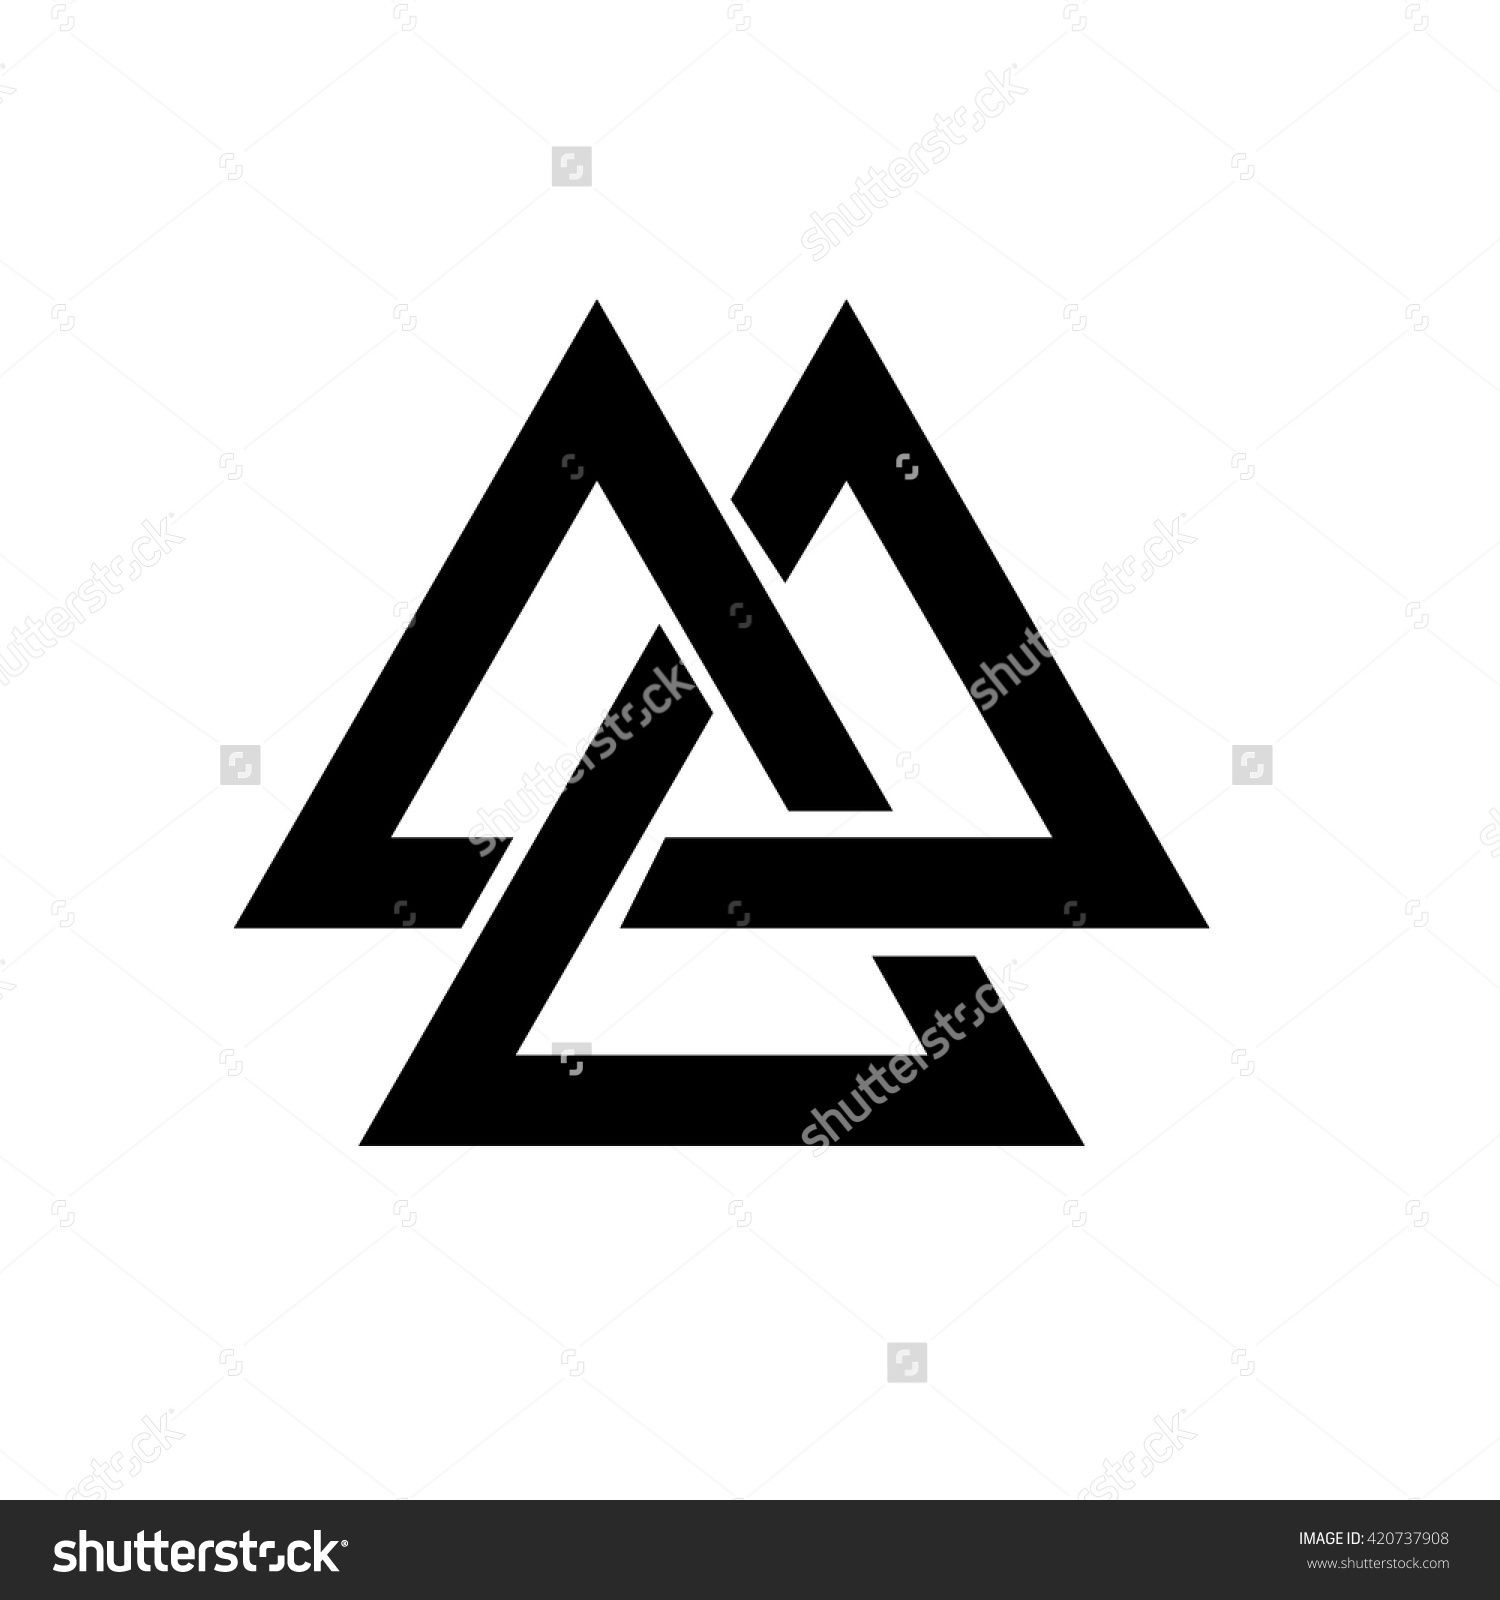 triangle logo valknut is a viking age symbol which